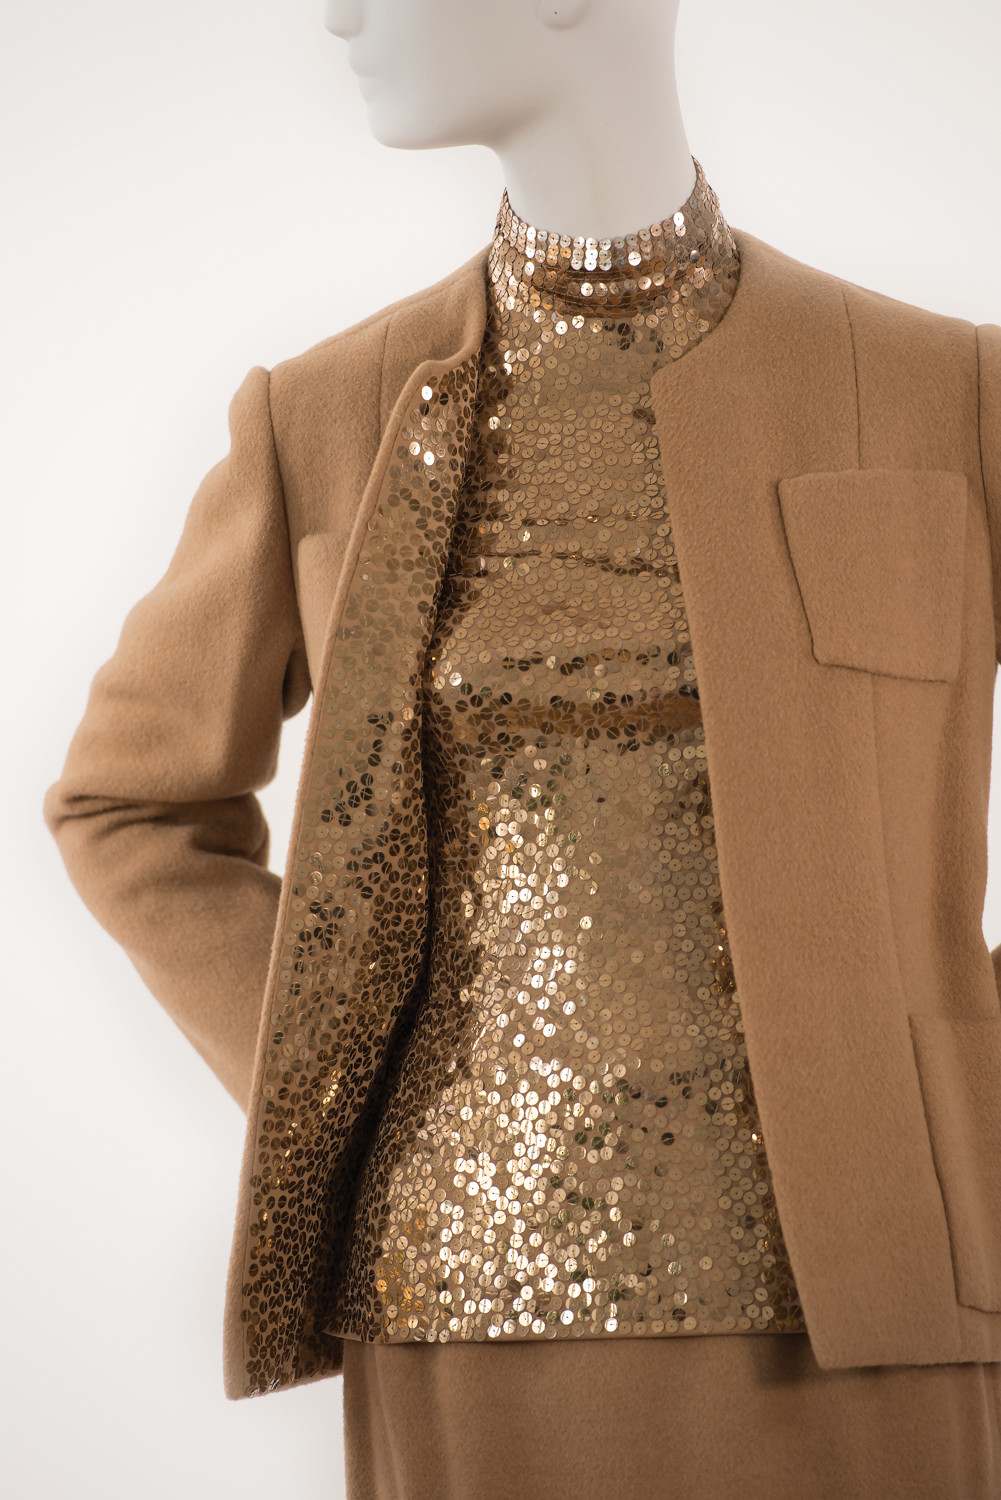 This 1971 camel hair and paillette theater suit is one of nearly 100 items featured at The Museum at Fashion Institute of Technology's exhibition on fashion designer Norman Norell. Some of his clients included former first ladies Jacqueline Kennedy Onassis and Lady Bird Johnson. Michelle Obama wore a vintage dress by Norell during her time in the White House.